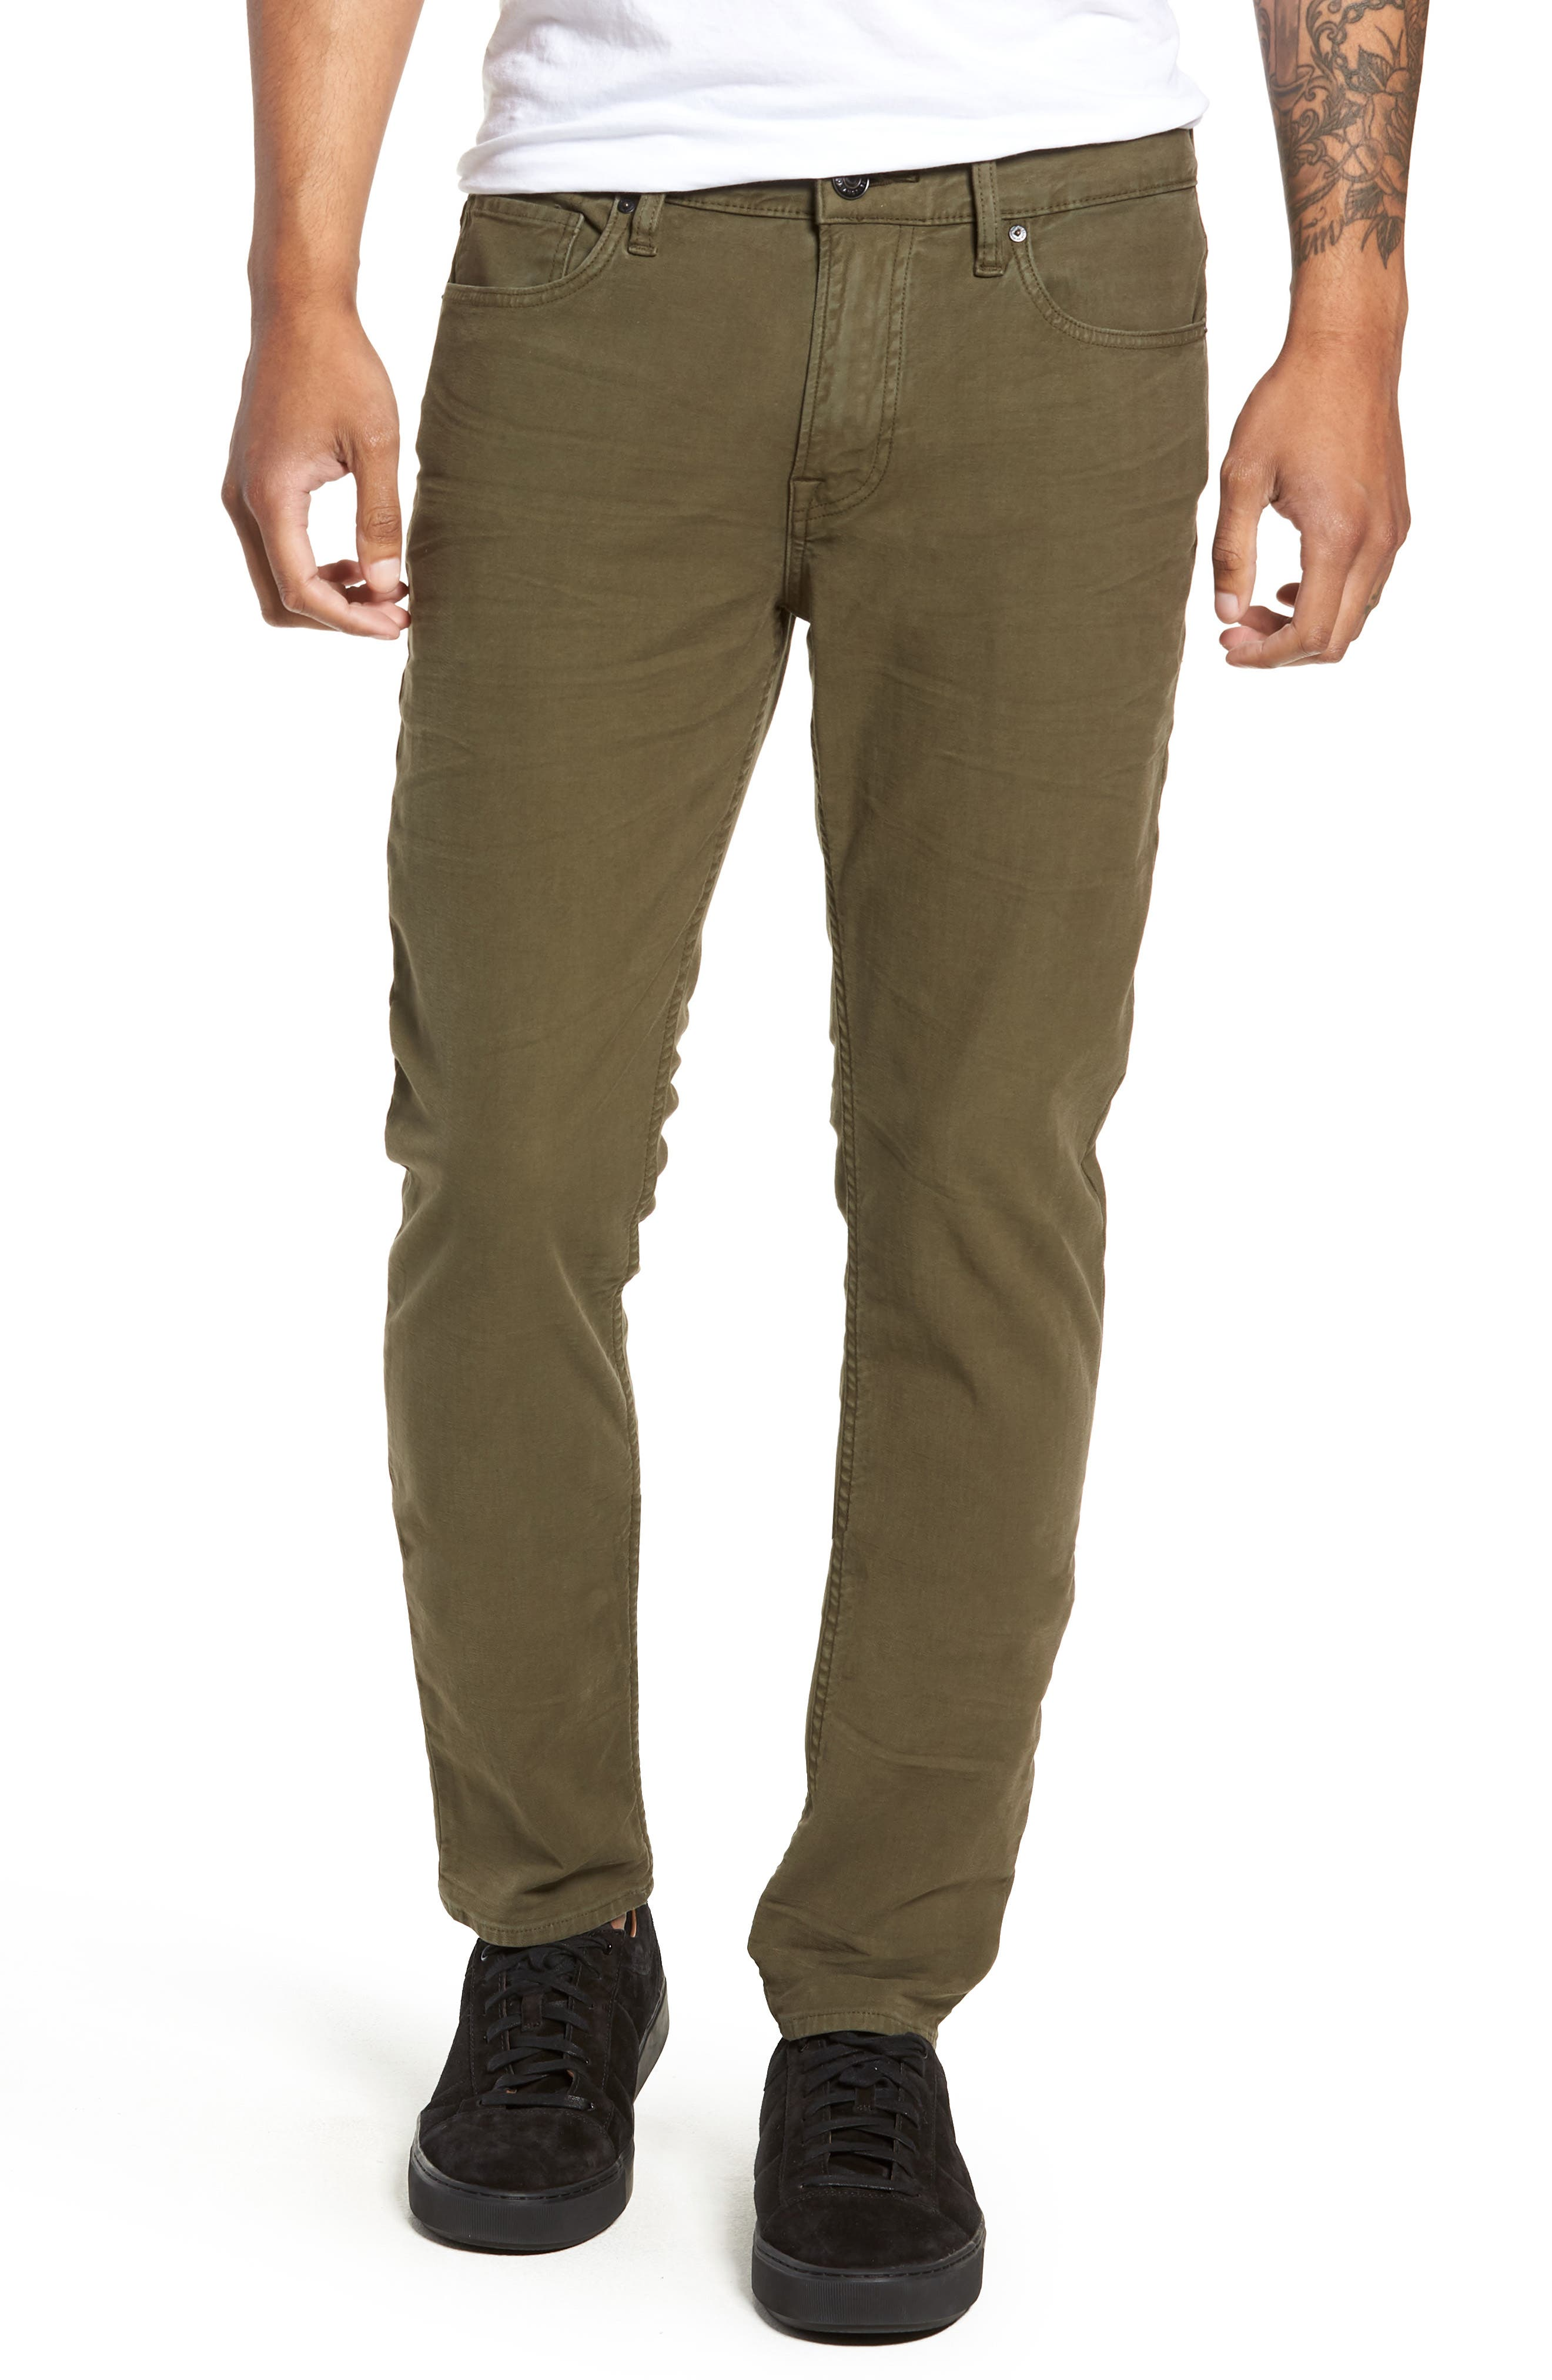 Axl Skinny Fit Jeans,                             Main thumbnail 1, color,                             FATIGUE GREEN